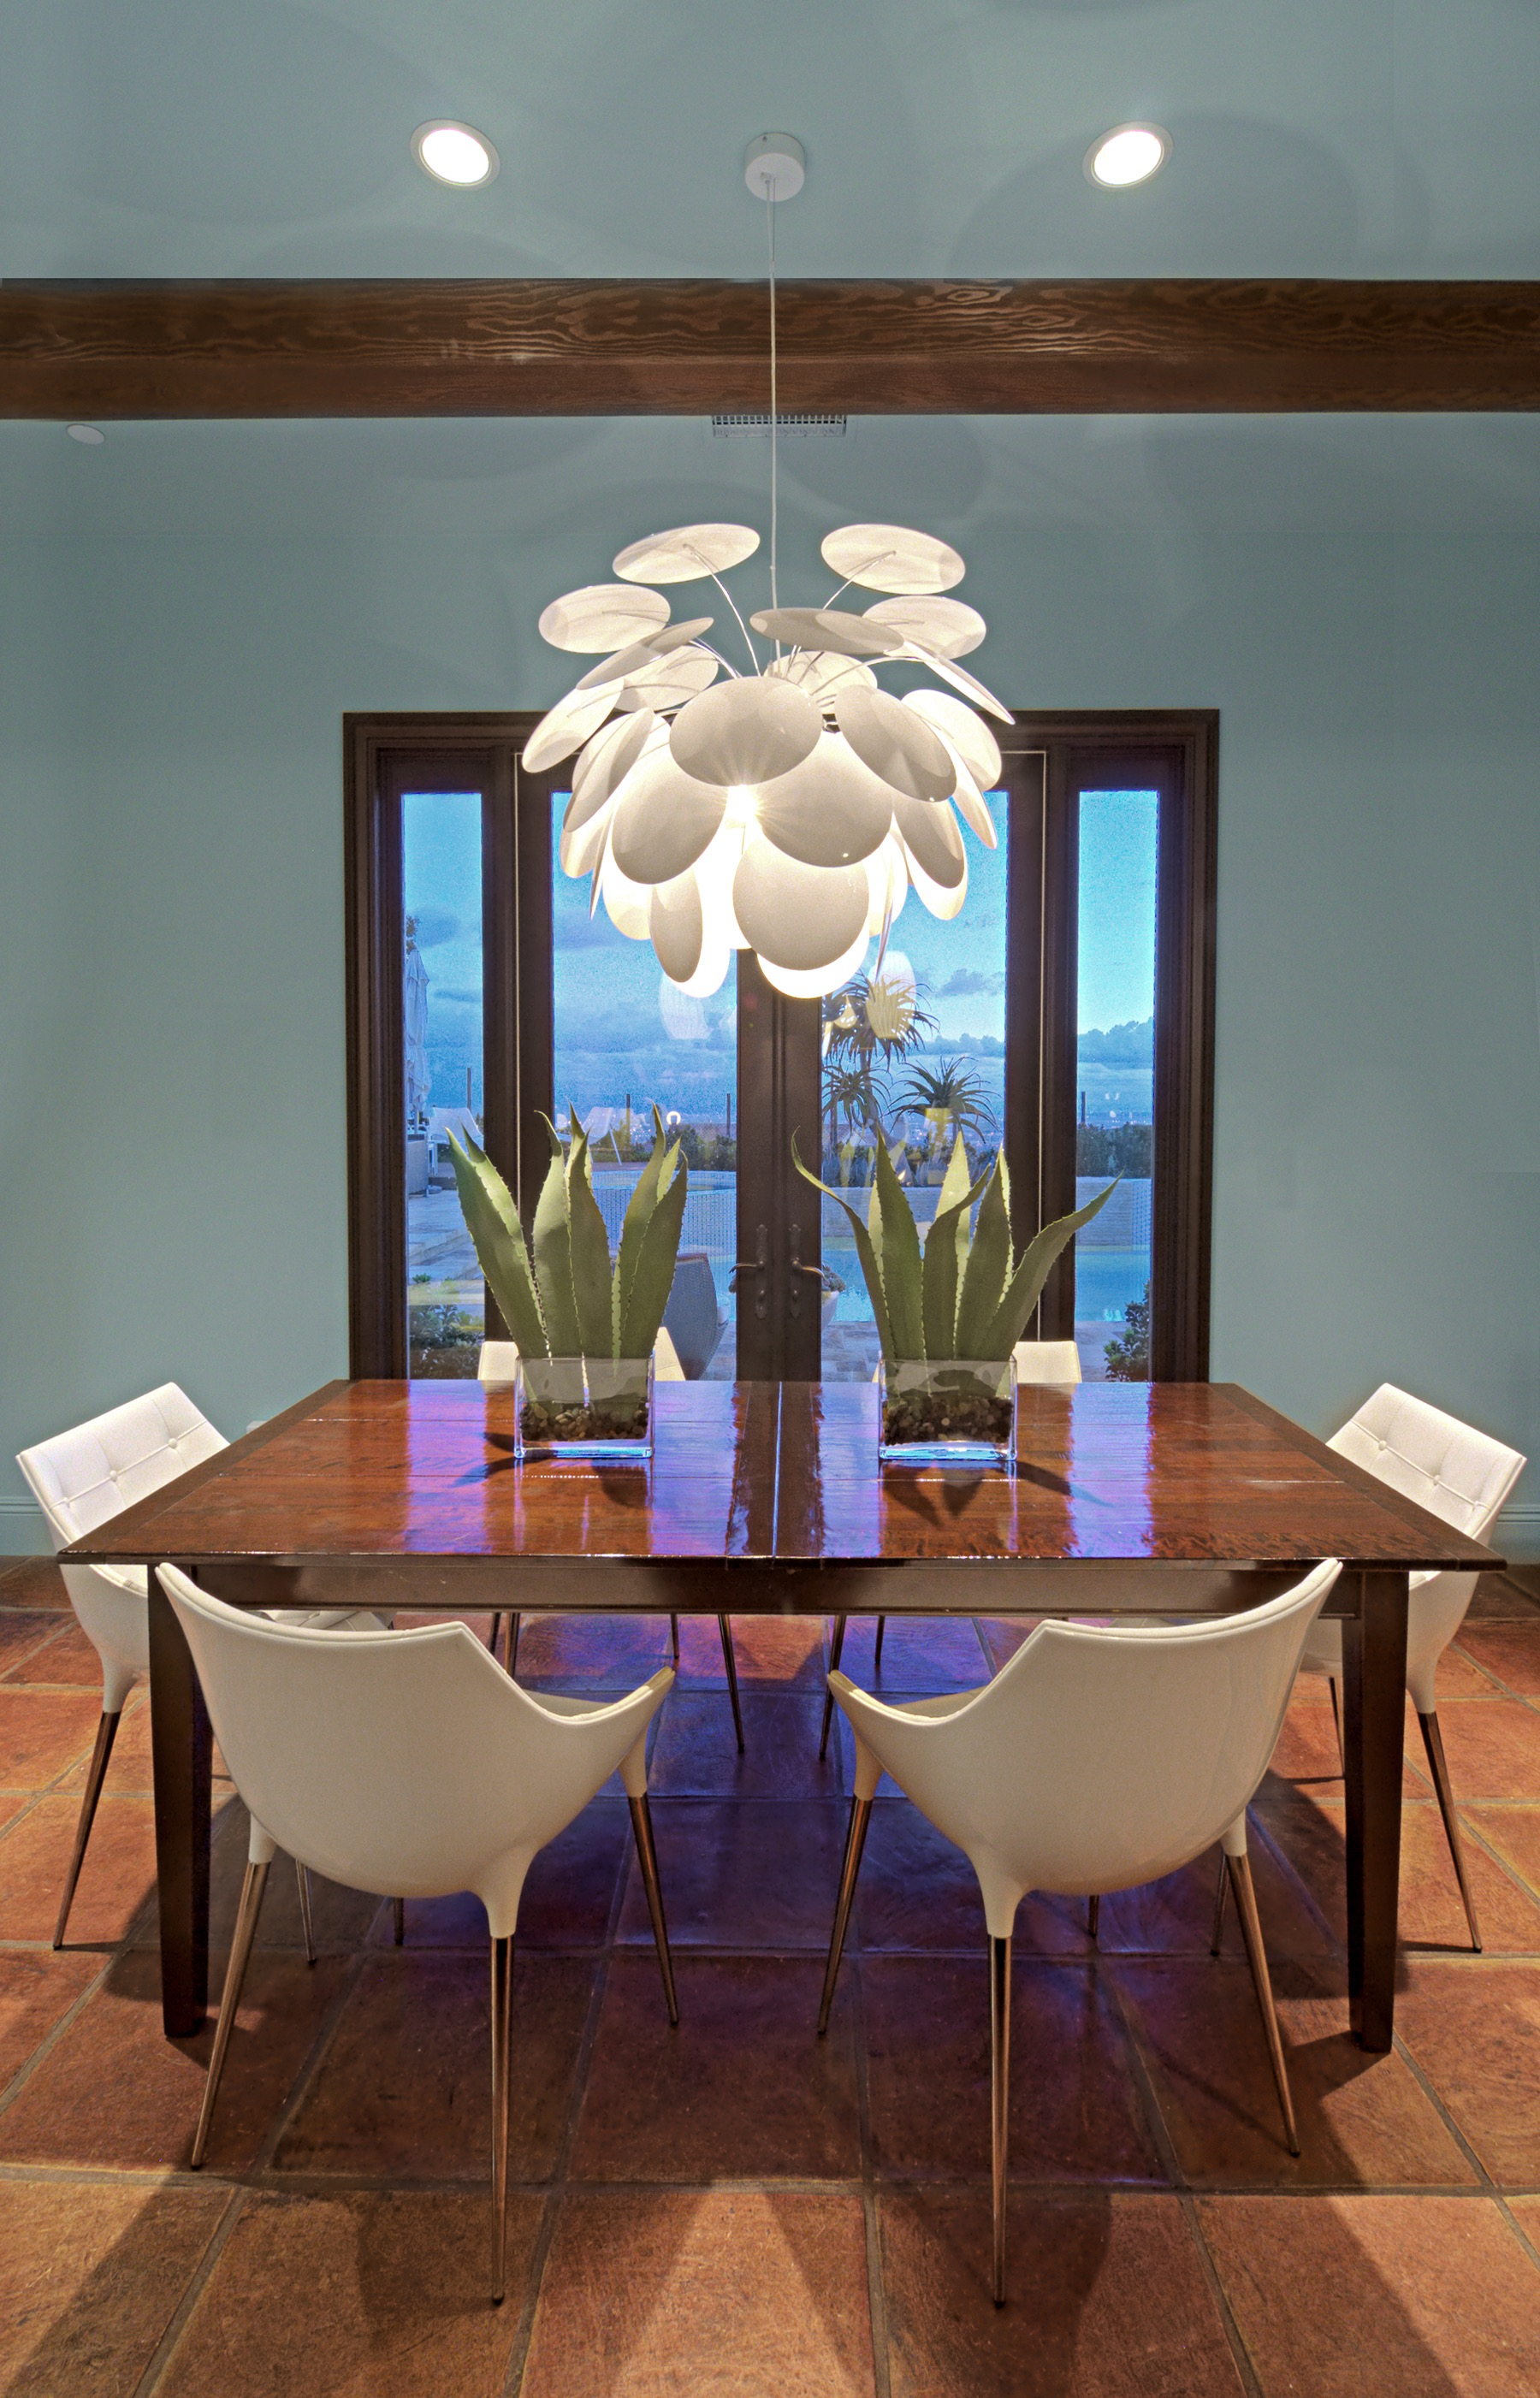 Holiday Decoration For Modern Dining Room With Creative Lighting (Image 18 of 32)